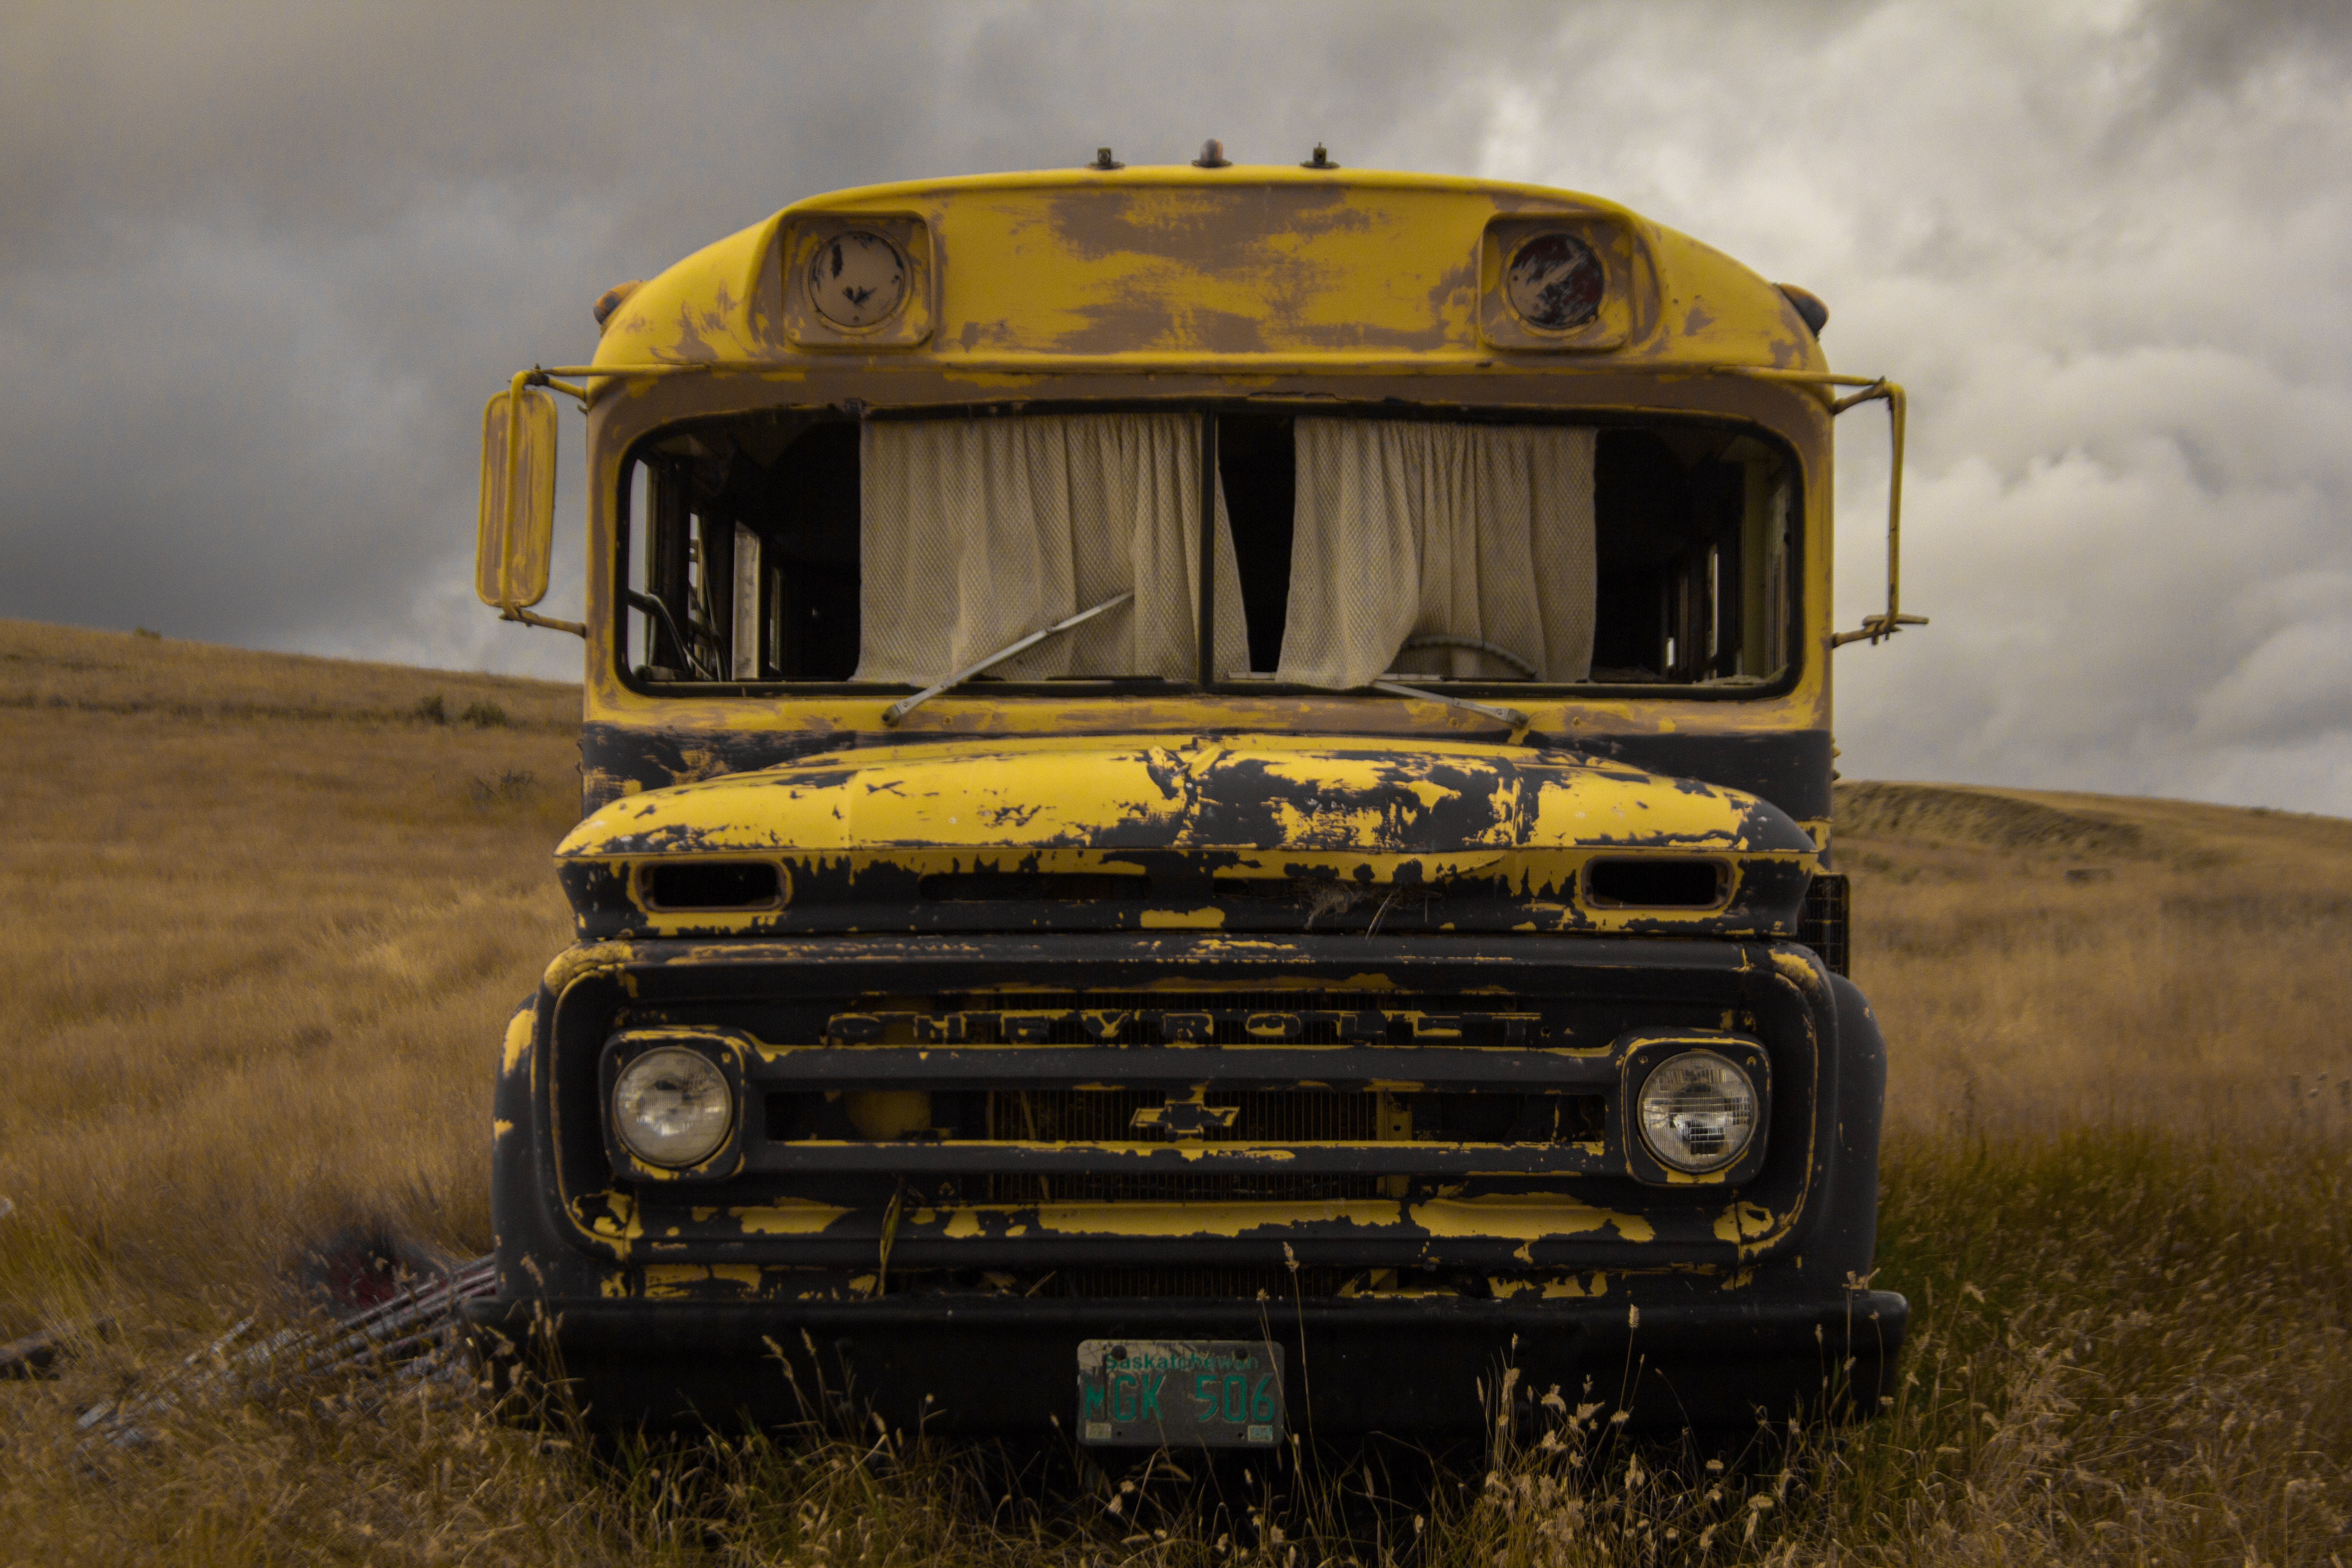 abandoned yellow school bus on green grass field during daytime